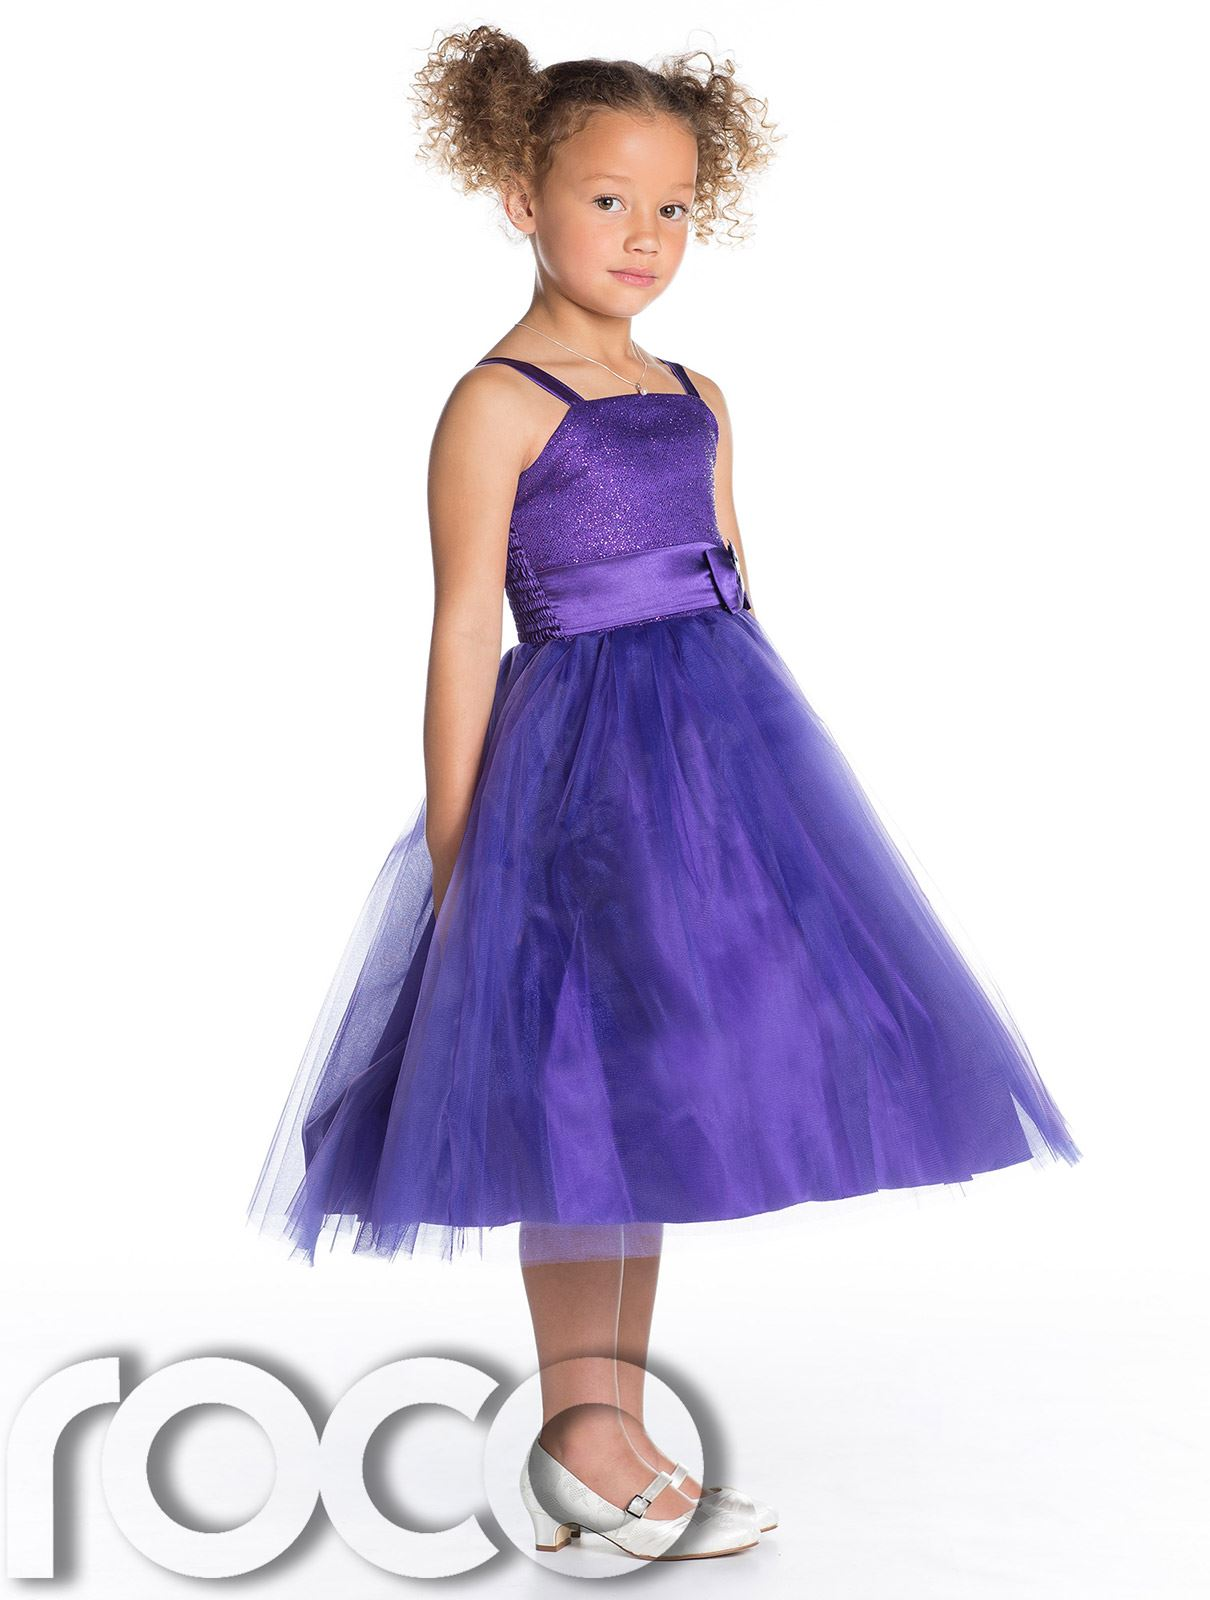 Girls Bridesmaid Dresses, Bow Detail Dress, Girls Party Dress, Prom ...